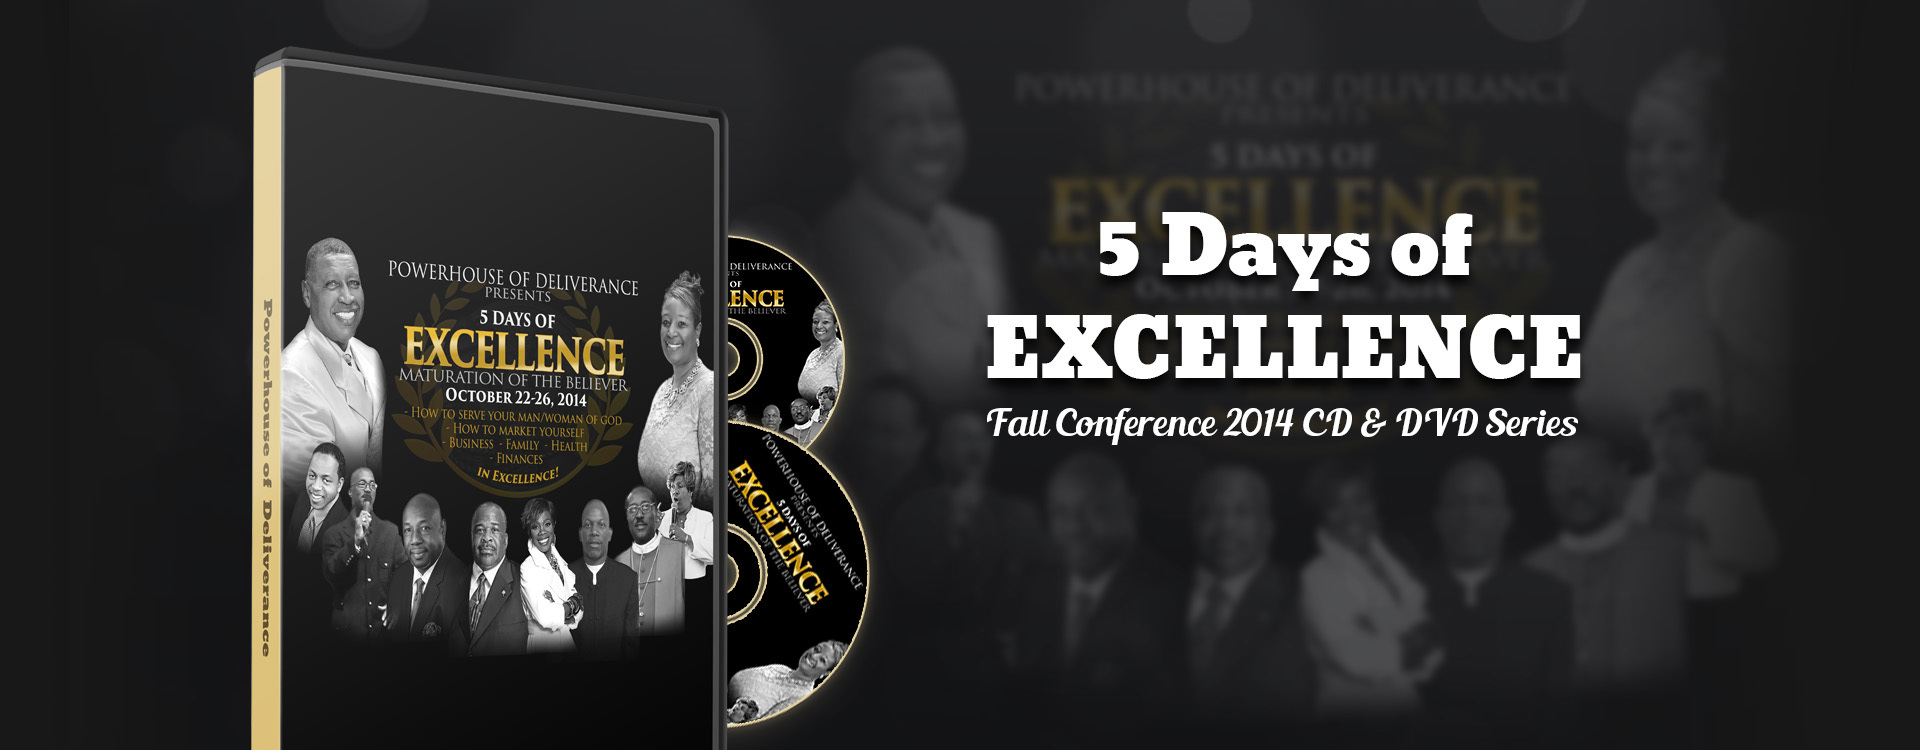 5-days-of-excellence-fall-of-conference-of-2014